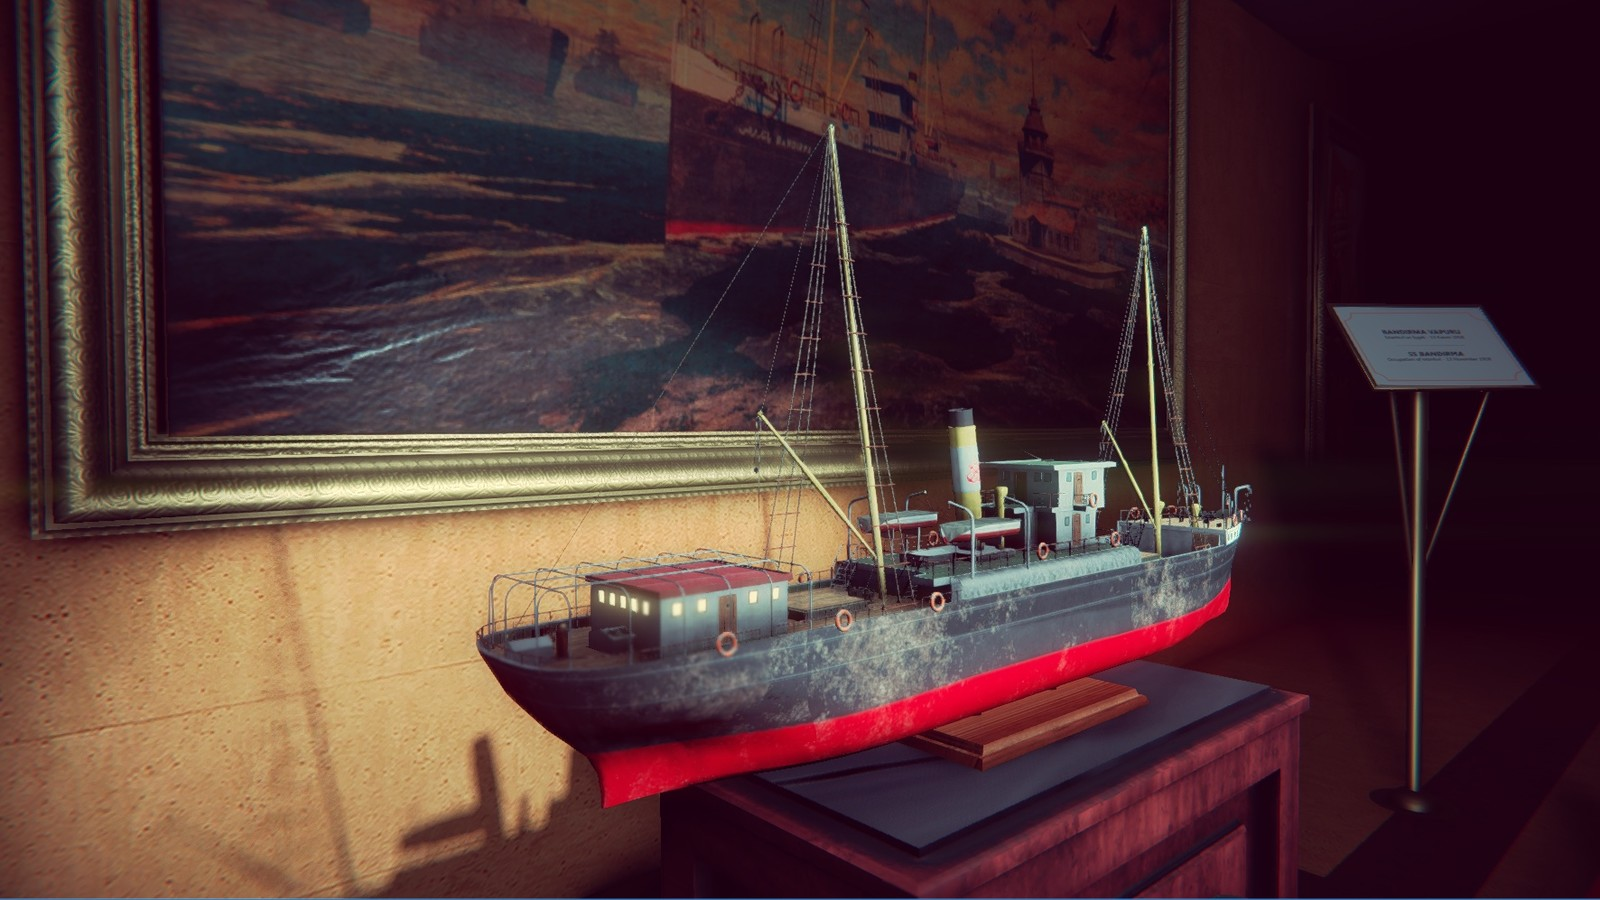 To increase the exhibition atmosphere, and smoothly connect to the next scene, i placed the model of the SS bandırma front of the painting